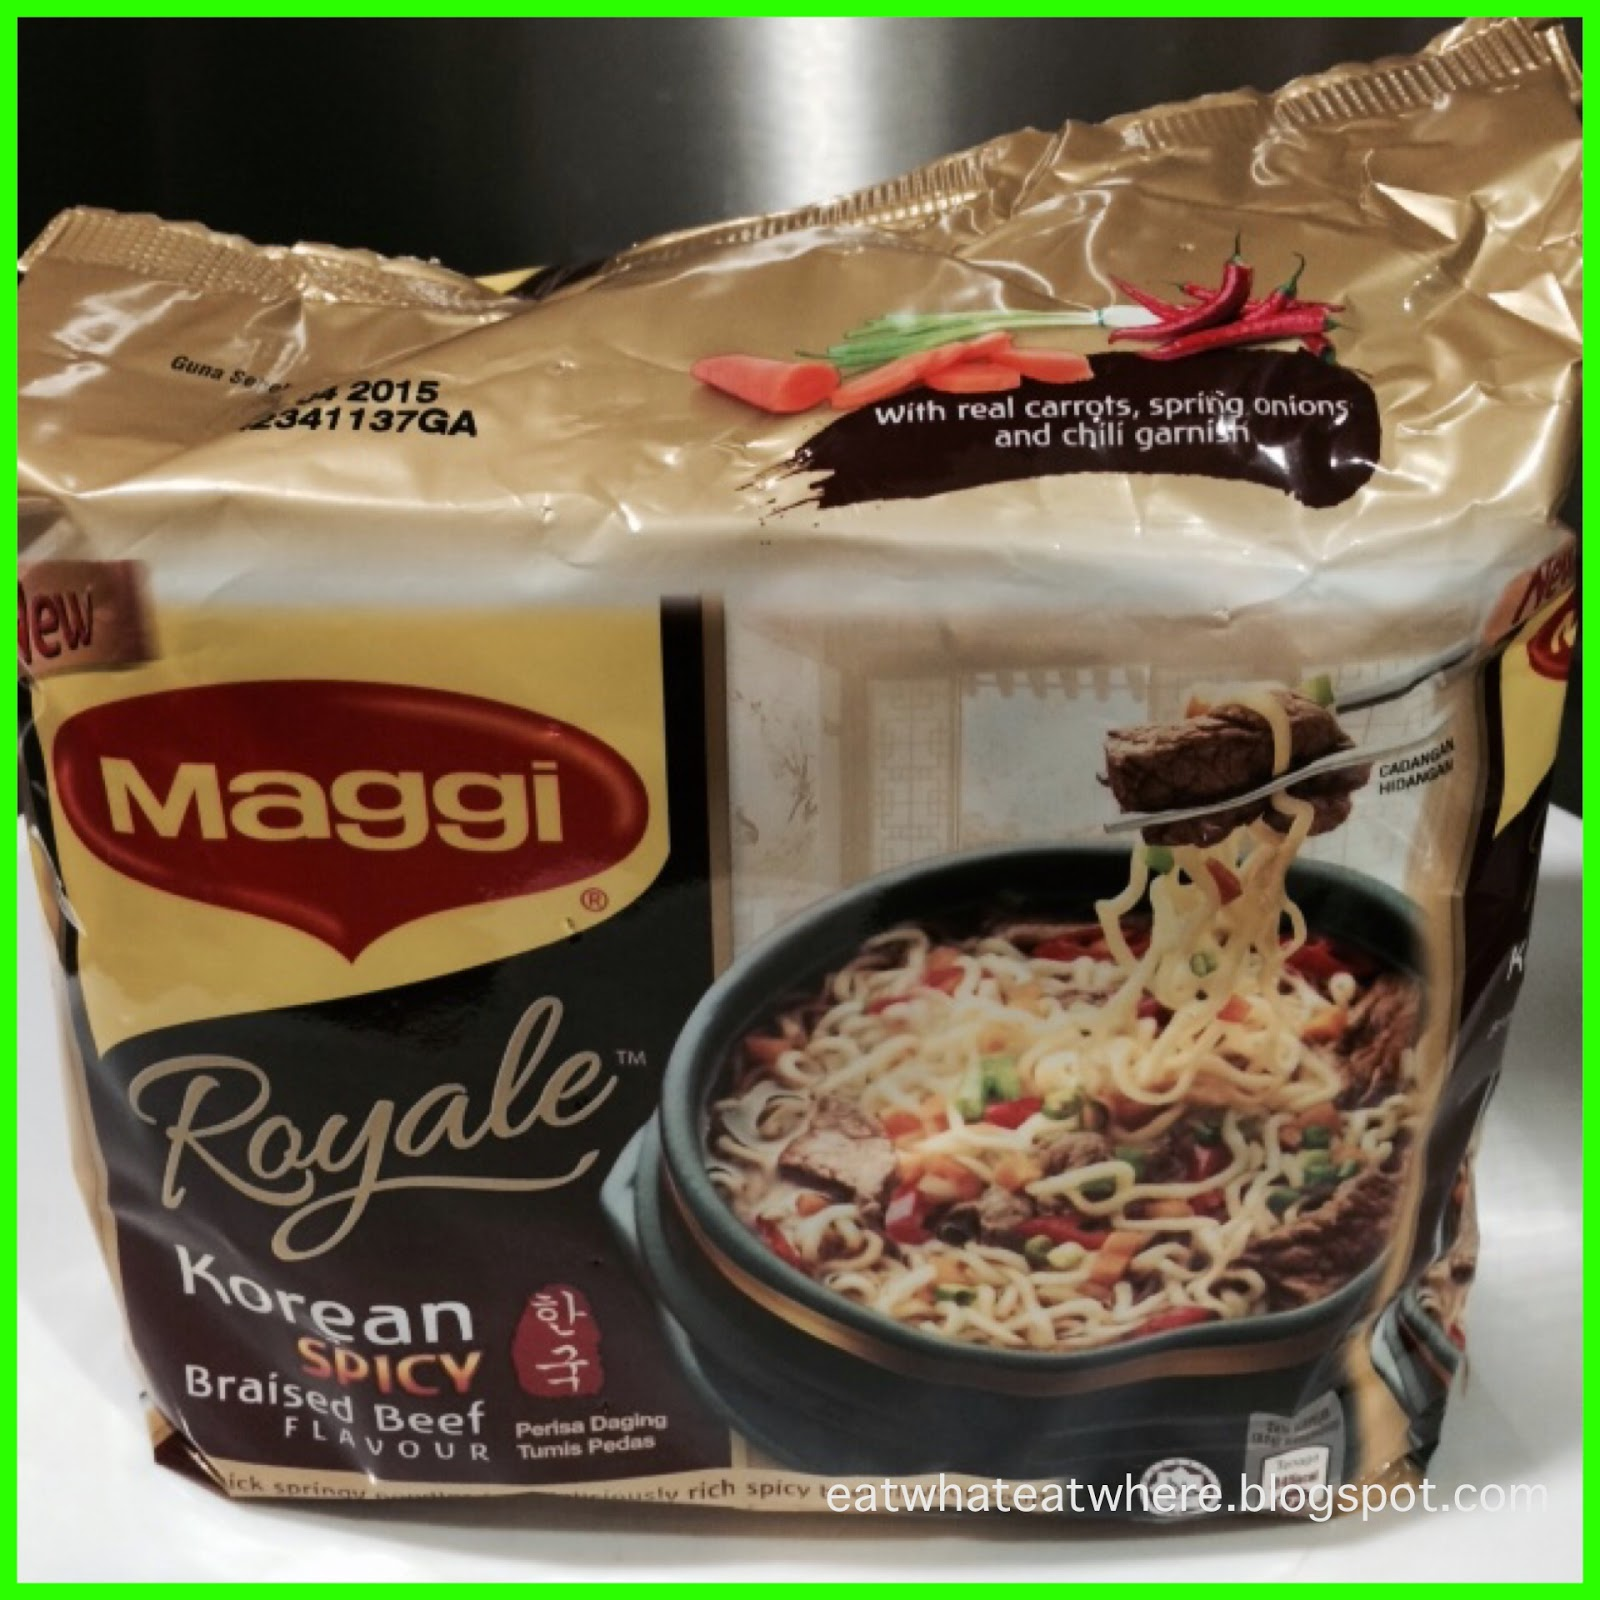 Cuisine Royale Eat Eat What Eat Where Ewew Tries Maggi Royale Korean Spicy